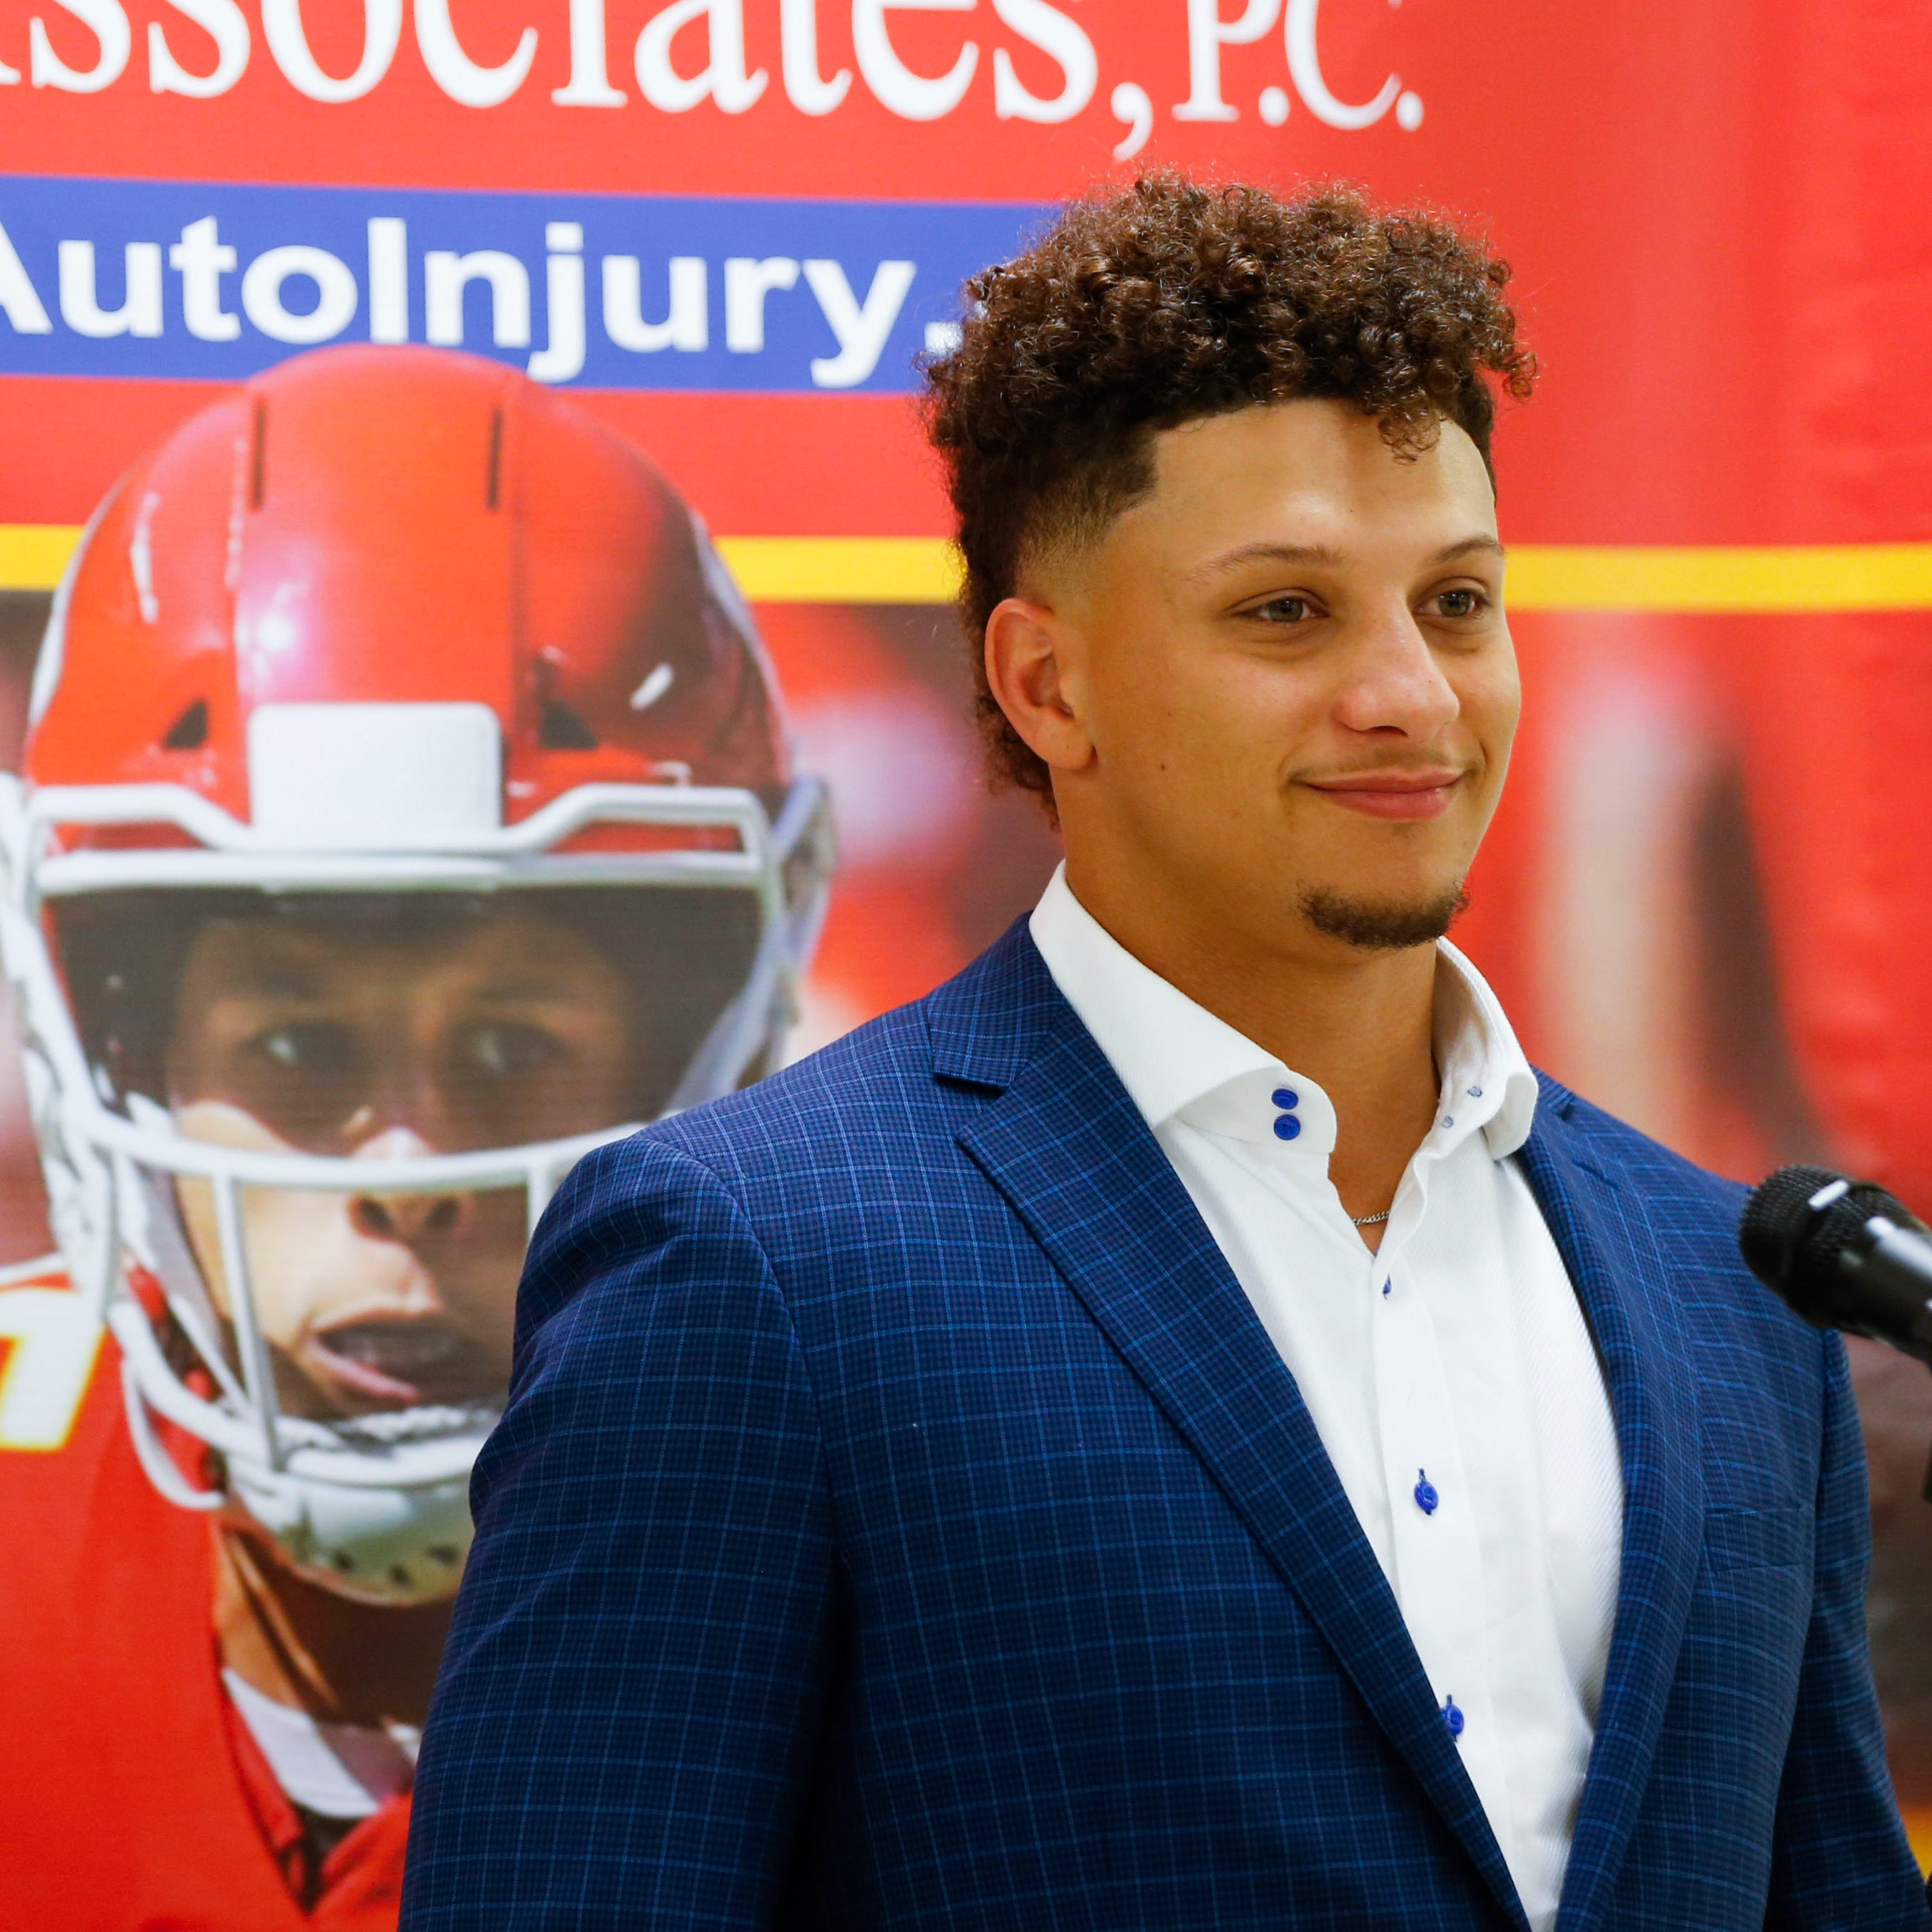 Springfield visit by Chiefs QB Mahomes sets new fundraising record